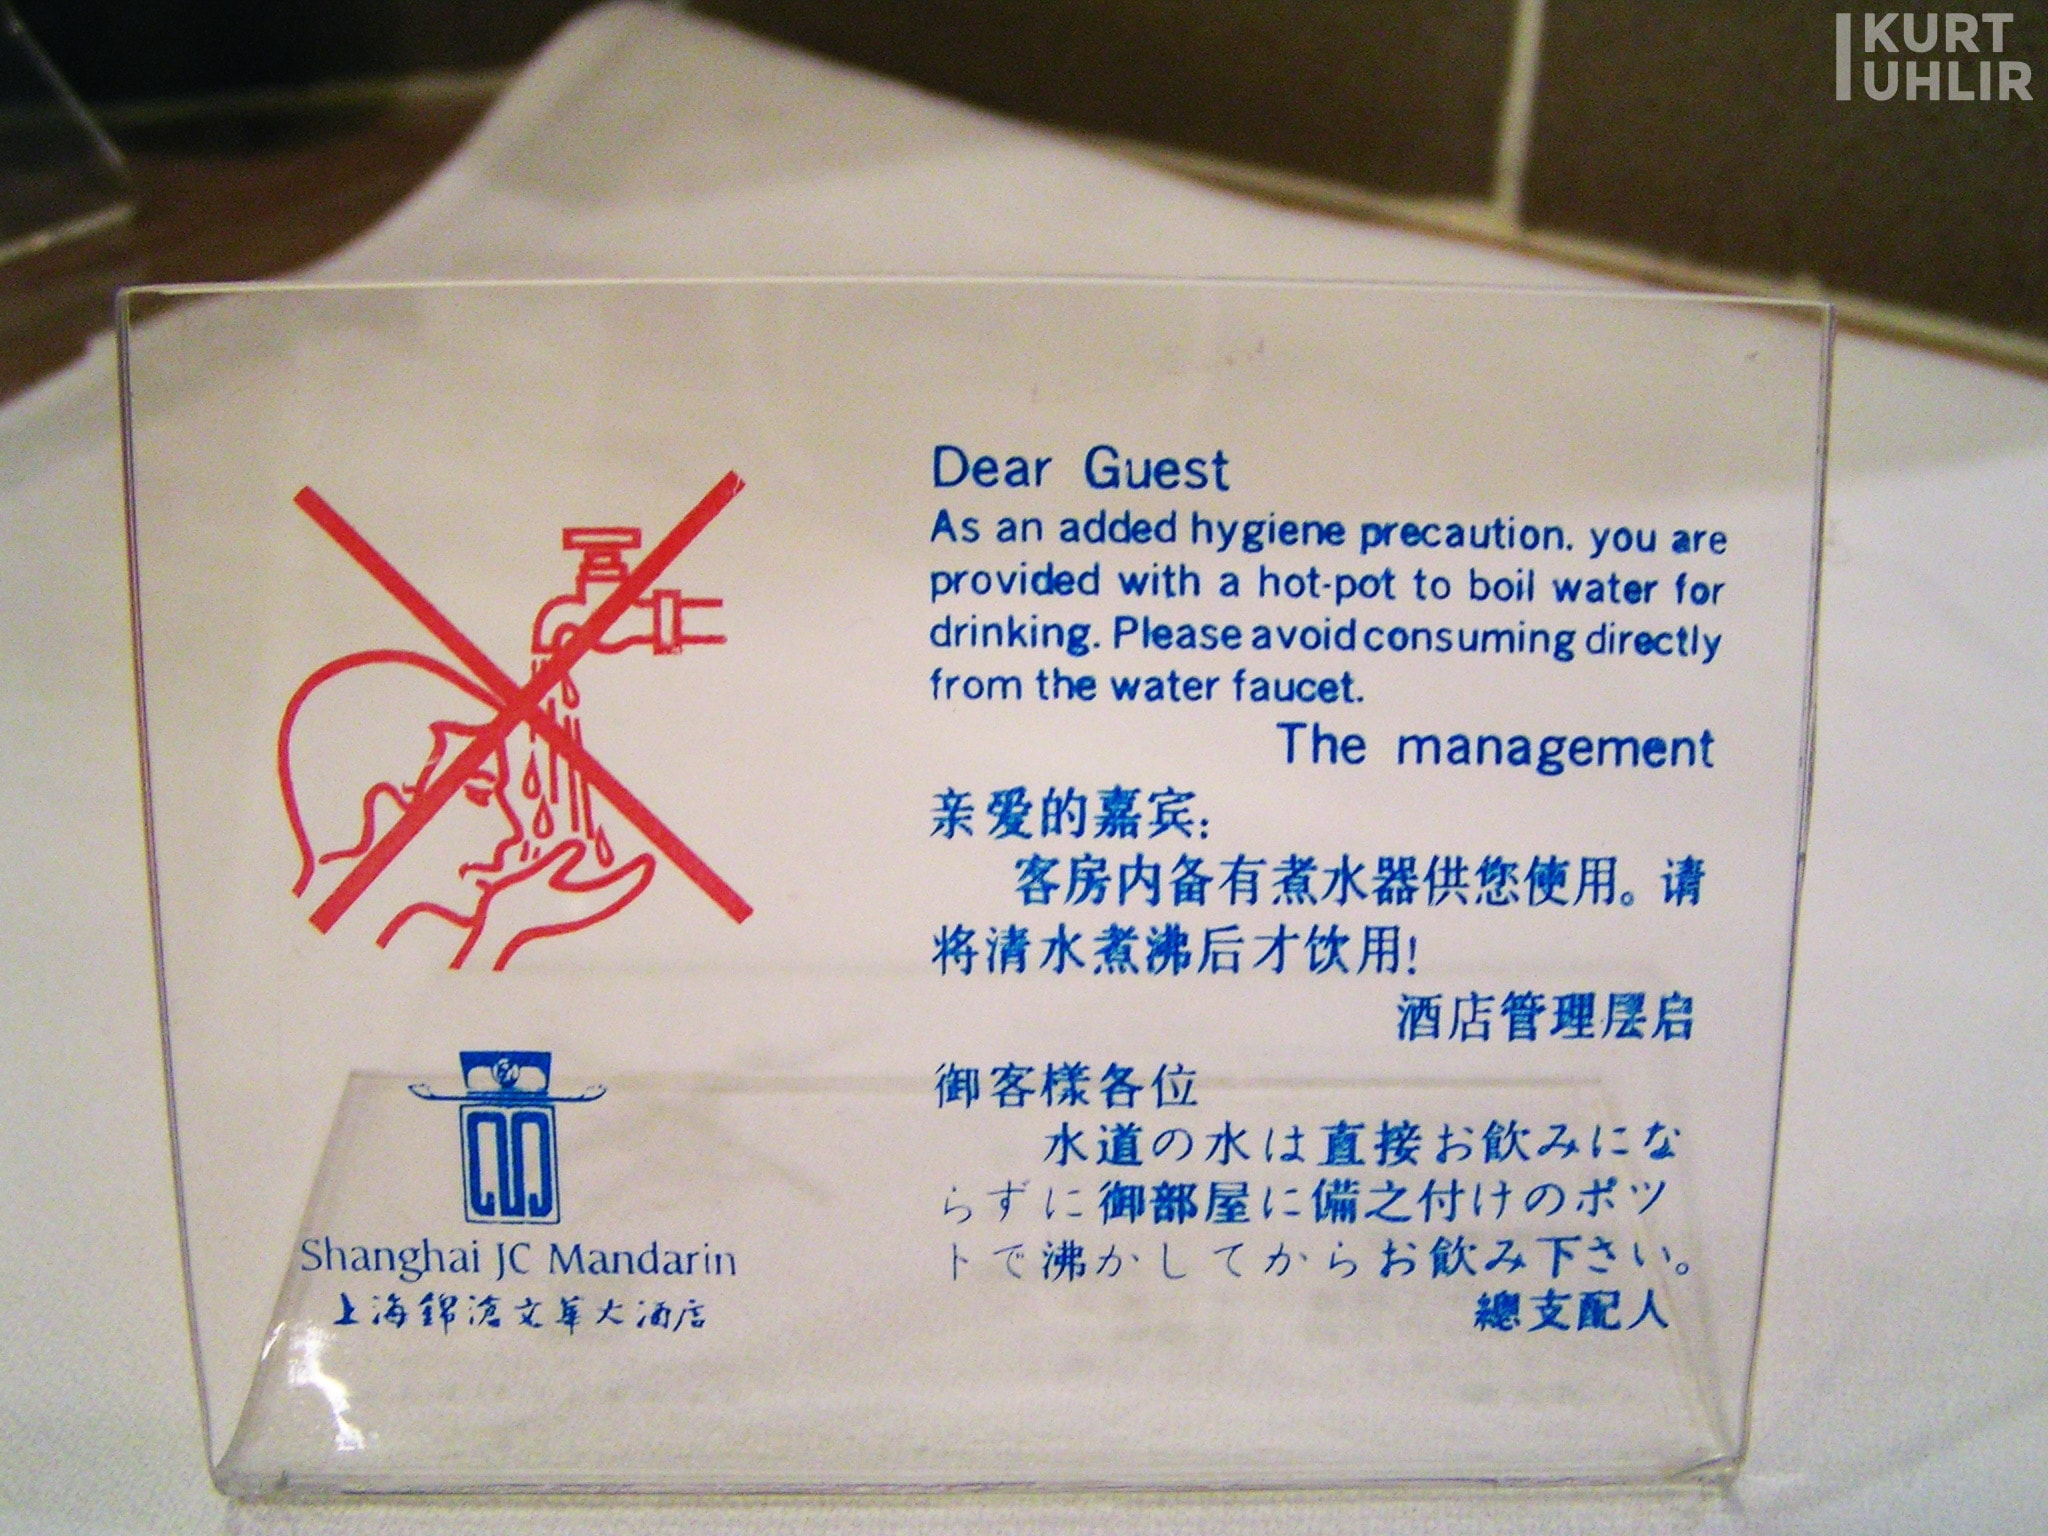 Love the warning signs when traveling for work. Here's the drinking water sign at Shanghai JC Mandarin for guests.